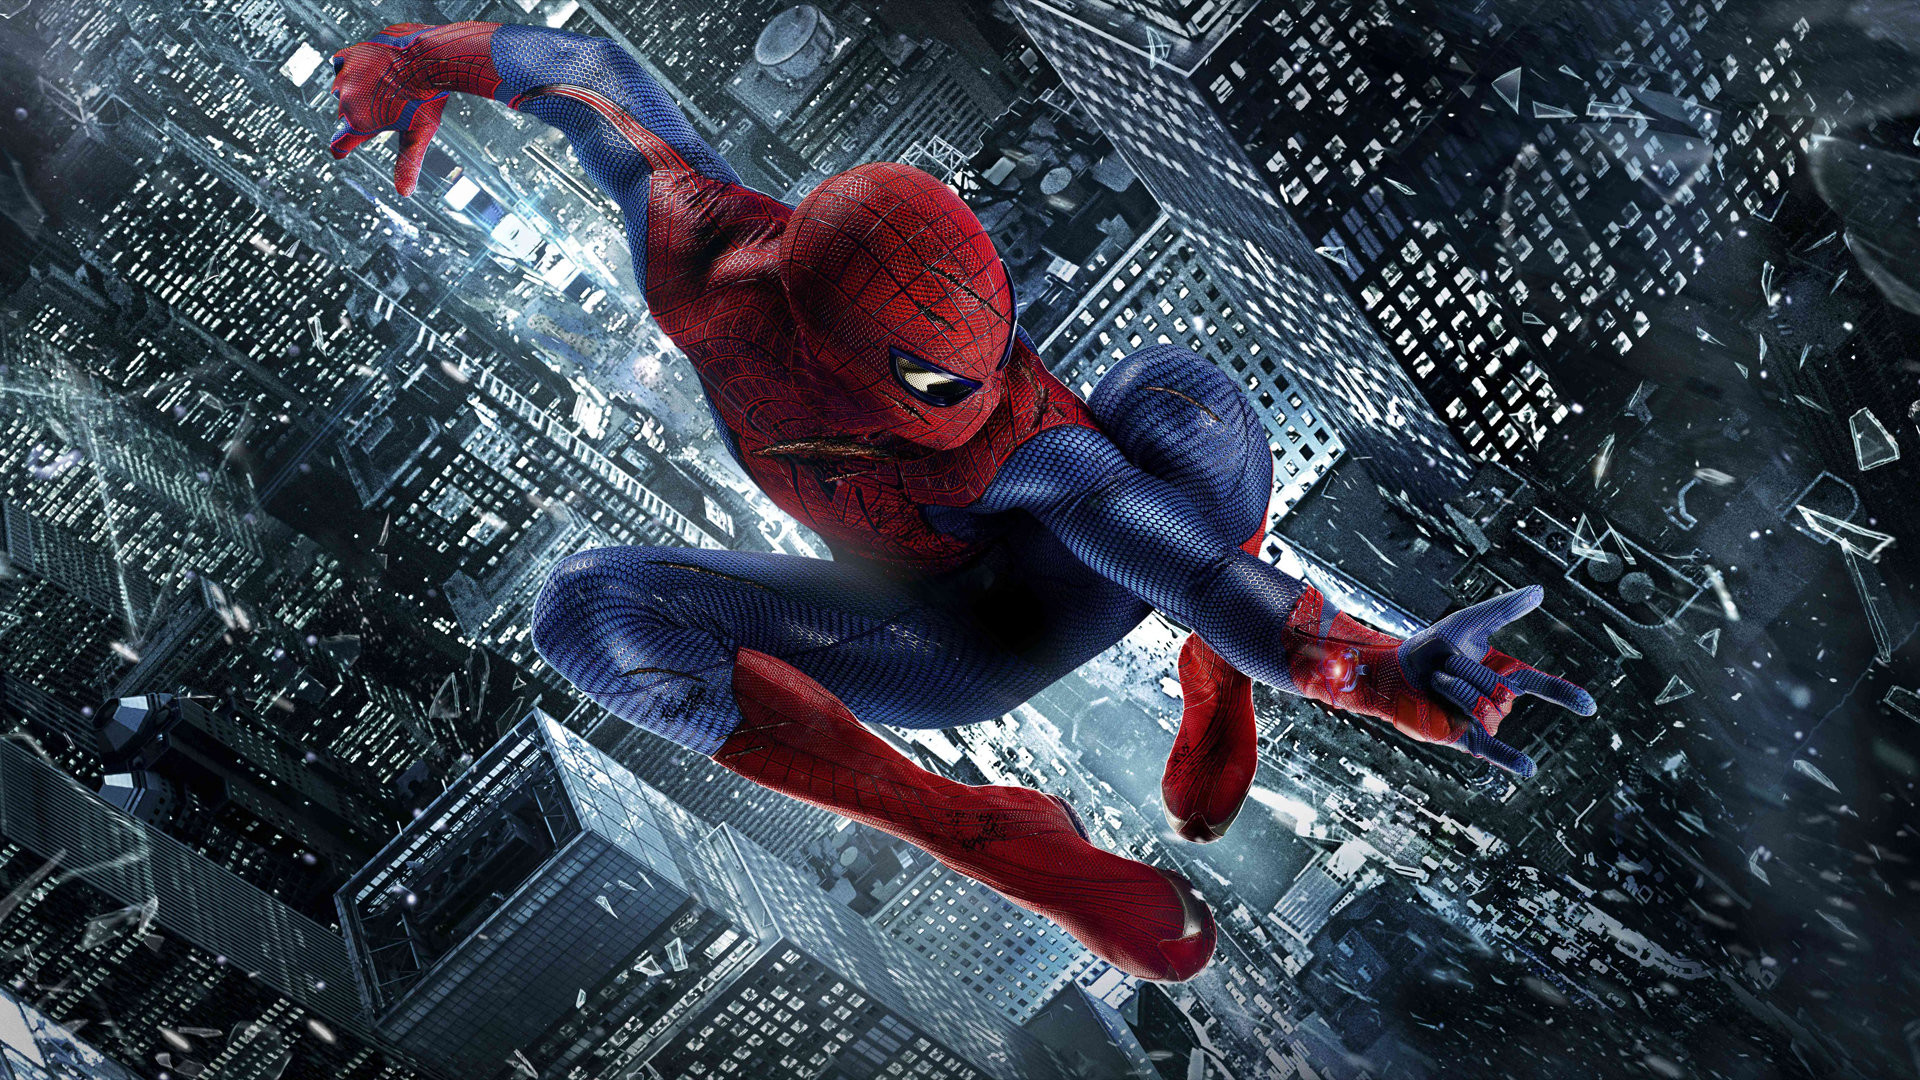 Spiderman 3 Hd Wallpapers 1080p: HD Spider Man Desktop Wallpapers (67+ Images